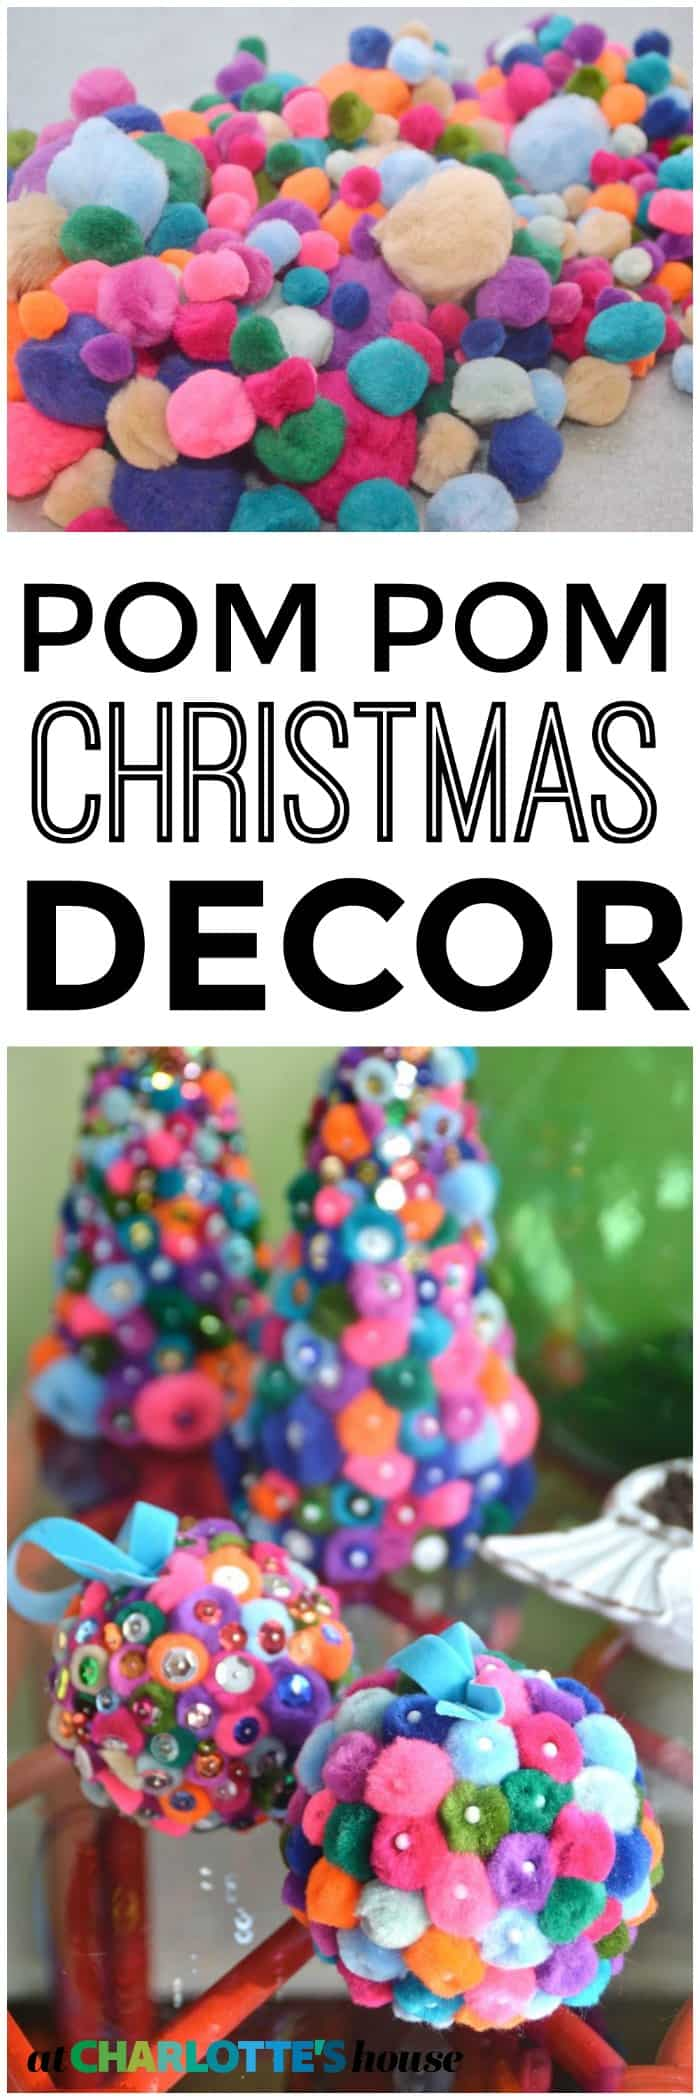 colorful pom pom holiday decor